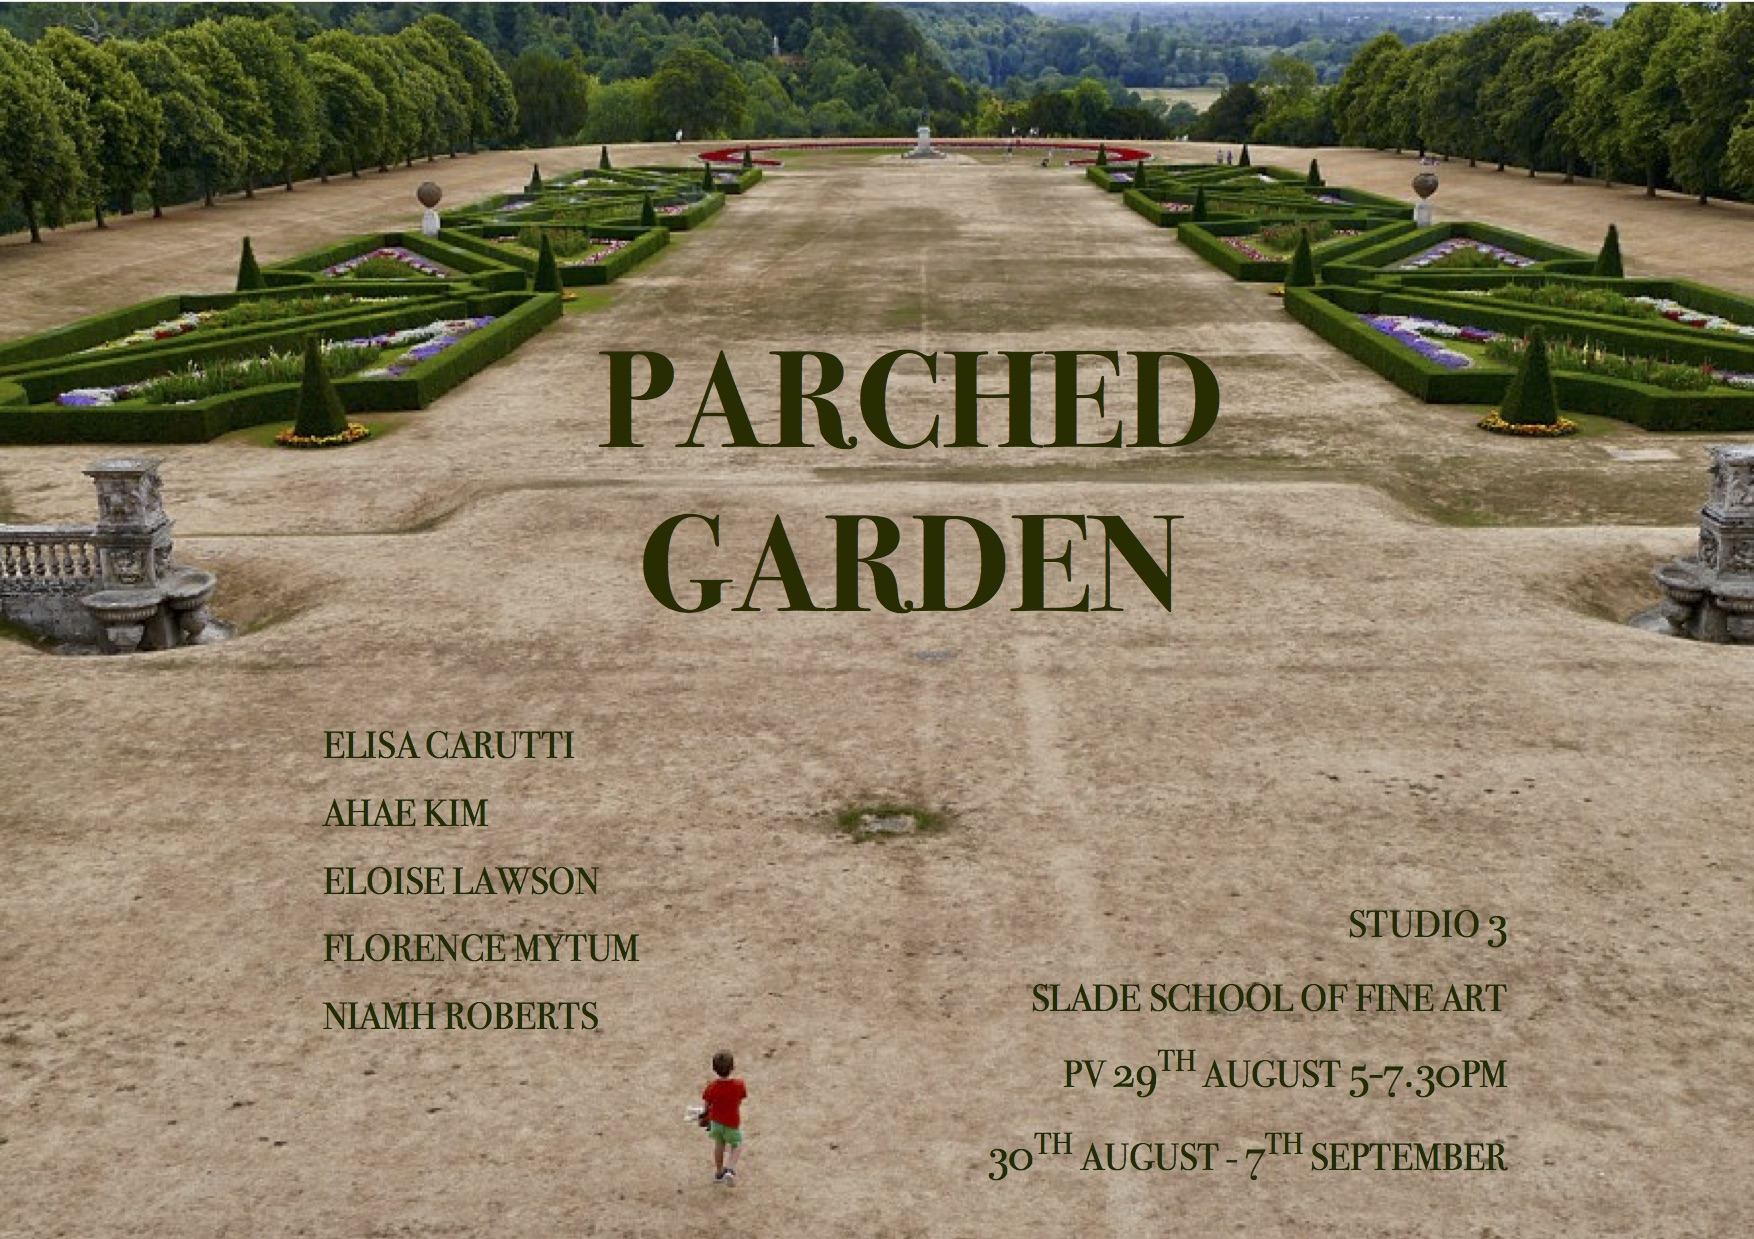 Parched Garden - Slade School of Fine Art